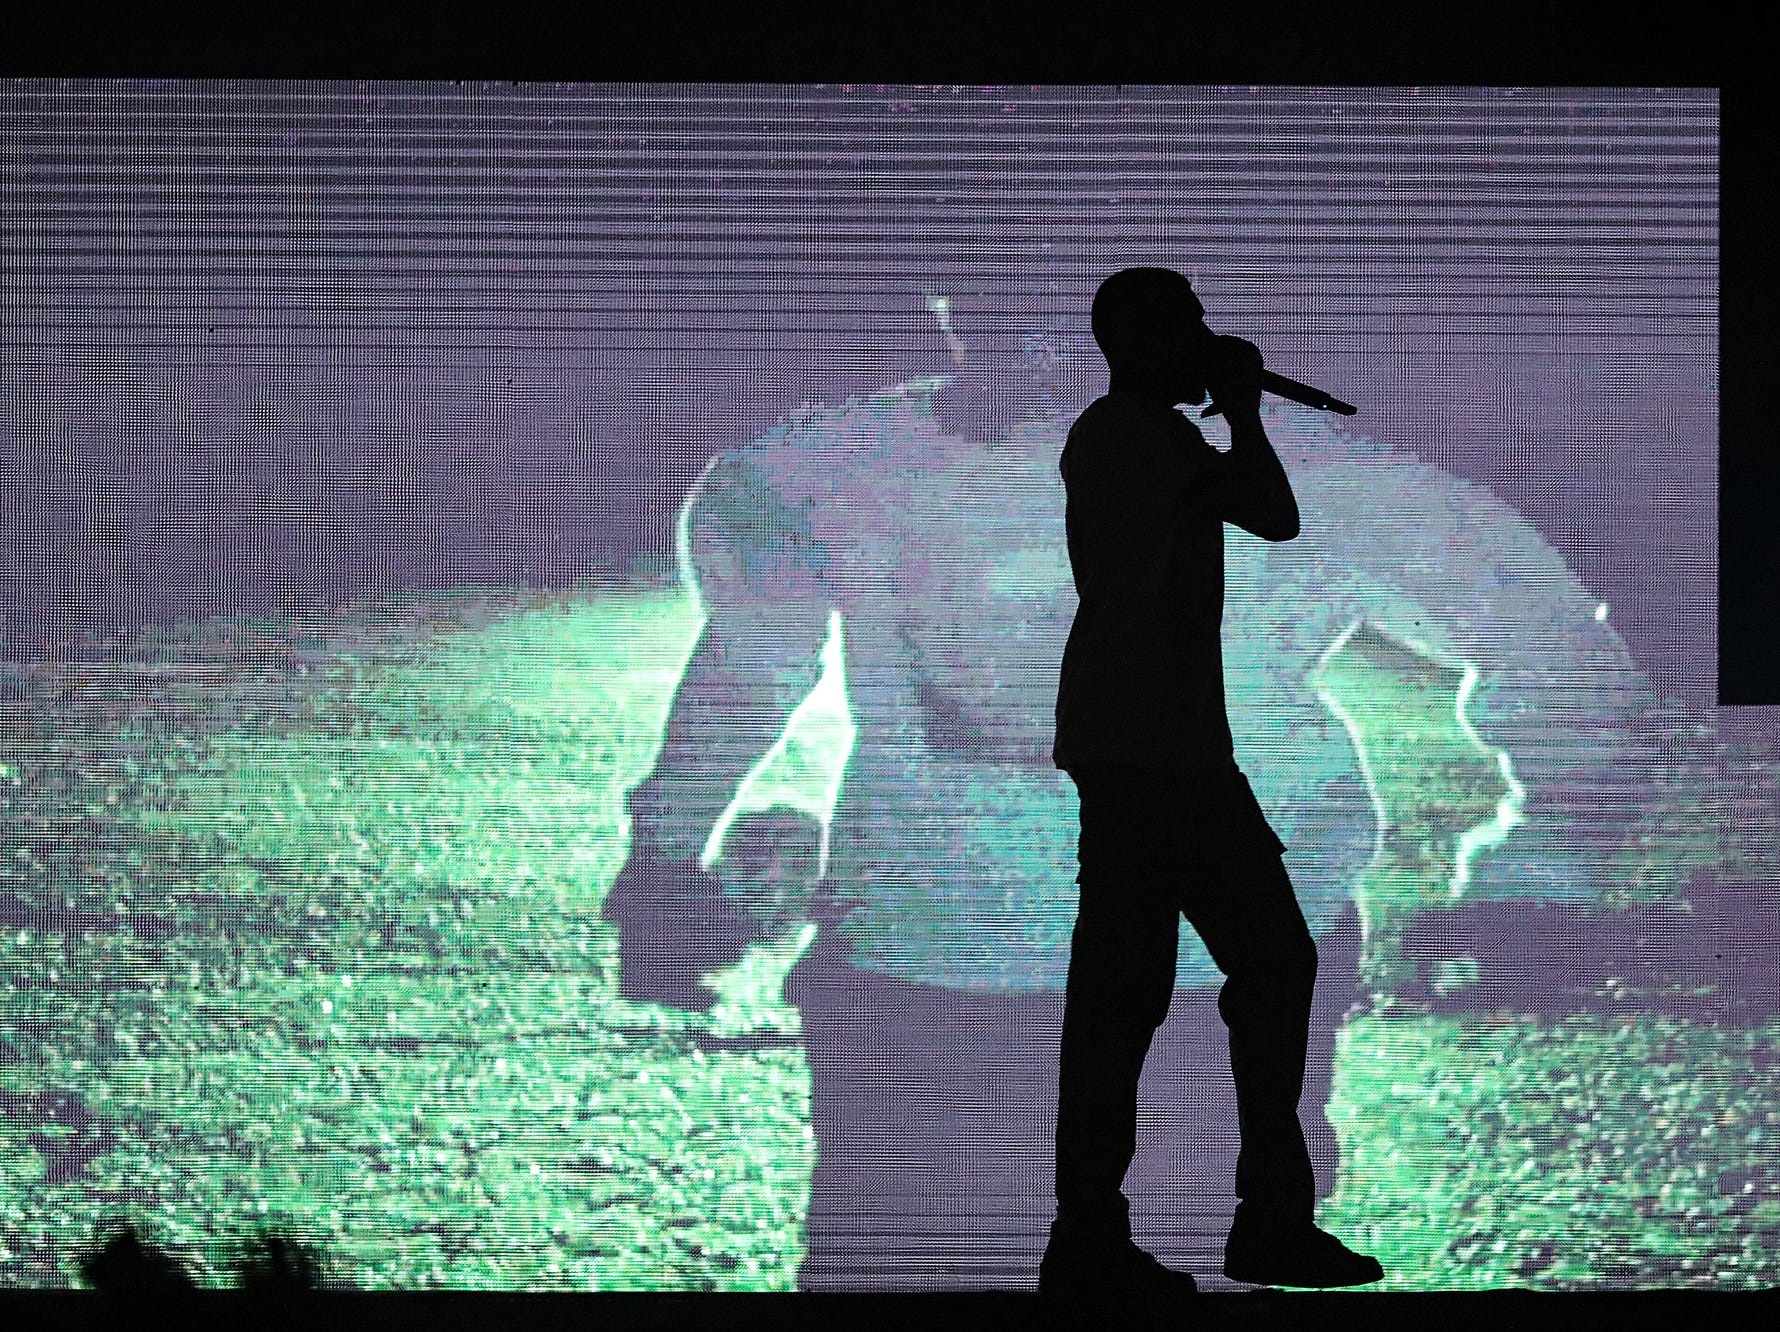 Sheck Wes performs as an opening act on Travis Scott's Astroworld Tour  at Banker's Life Fieldhouse in Indianapolis on Wednesday, Feb. 20, 2018.